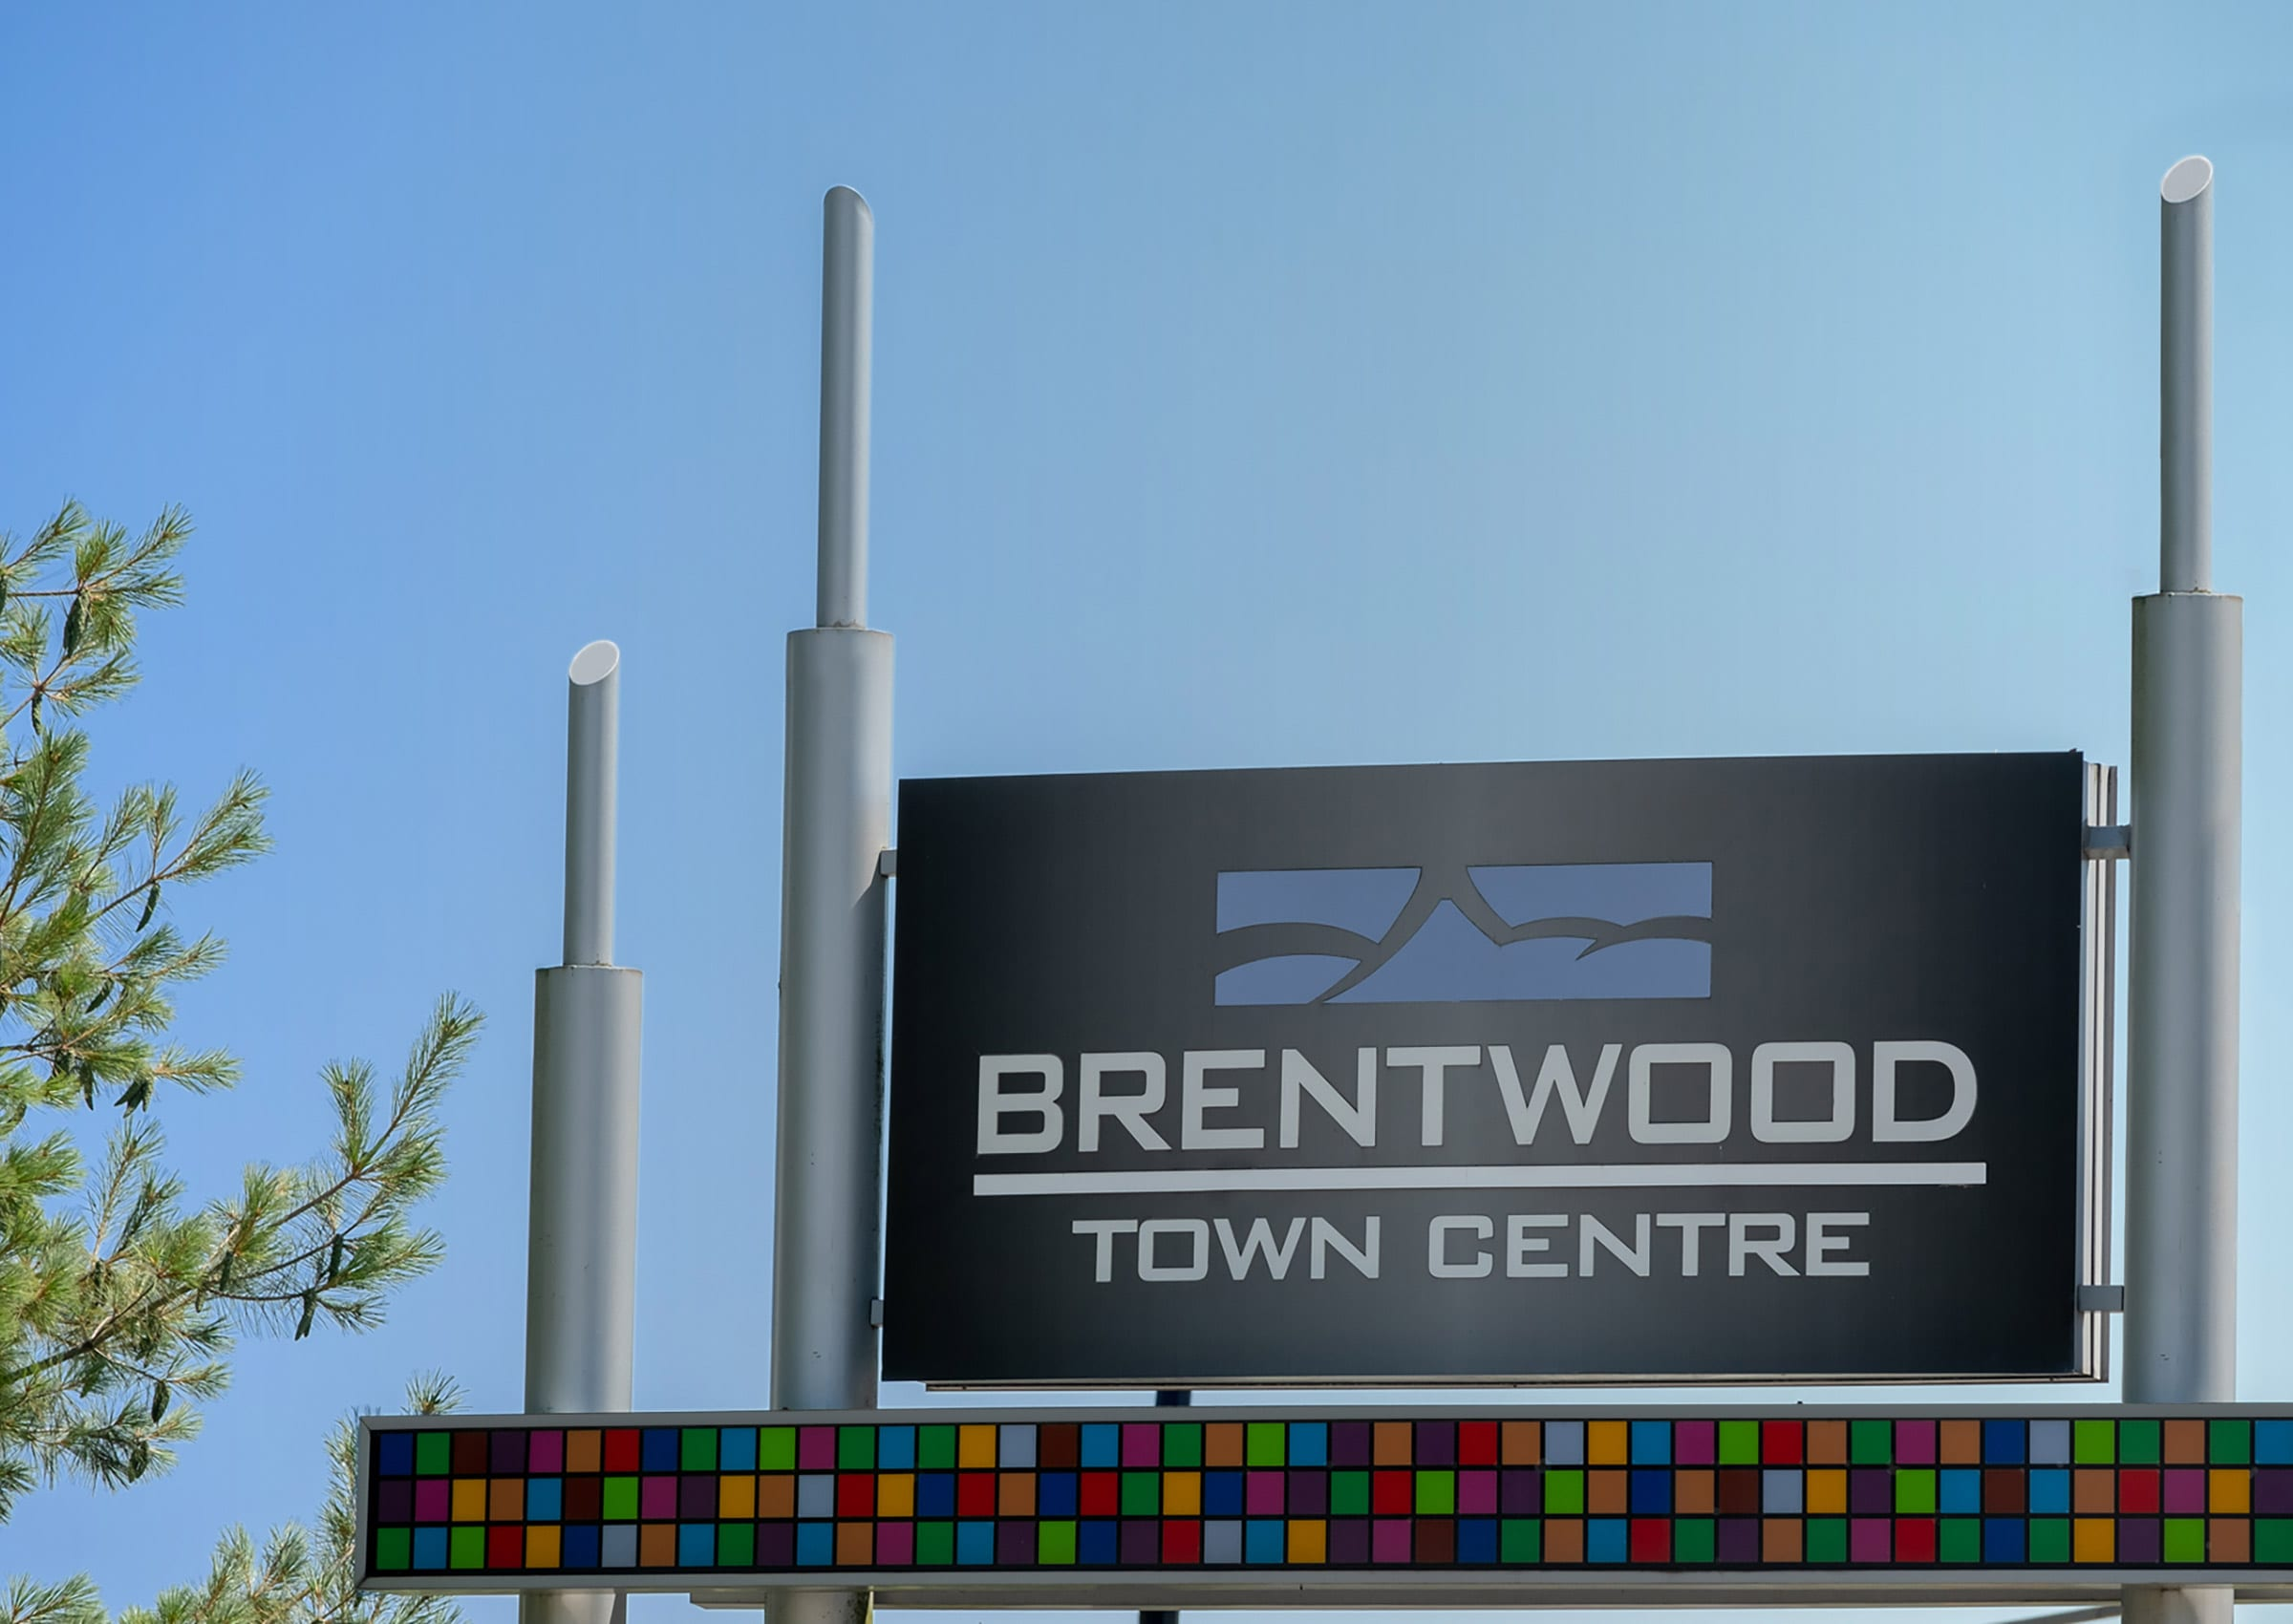 Signage for Brentwood Town Centre